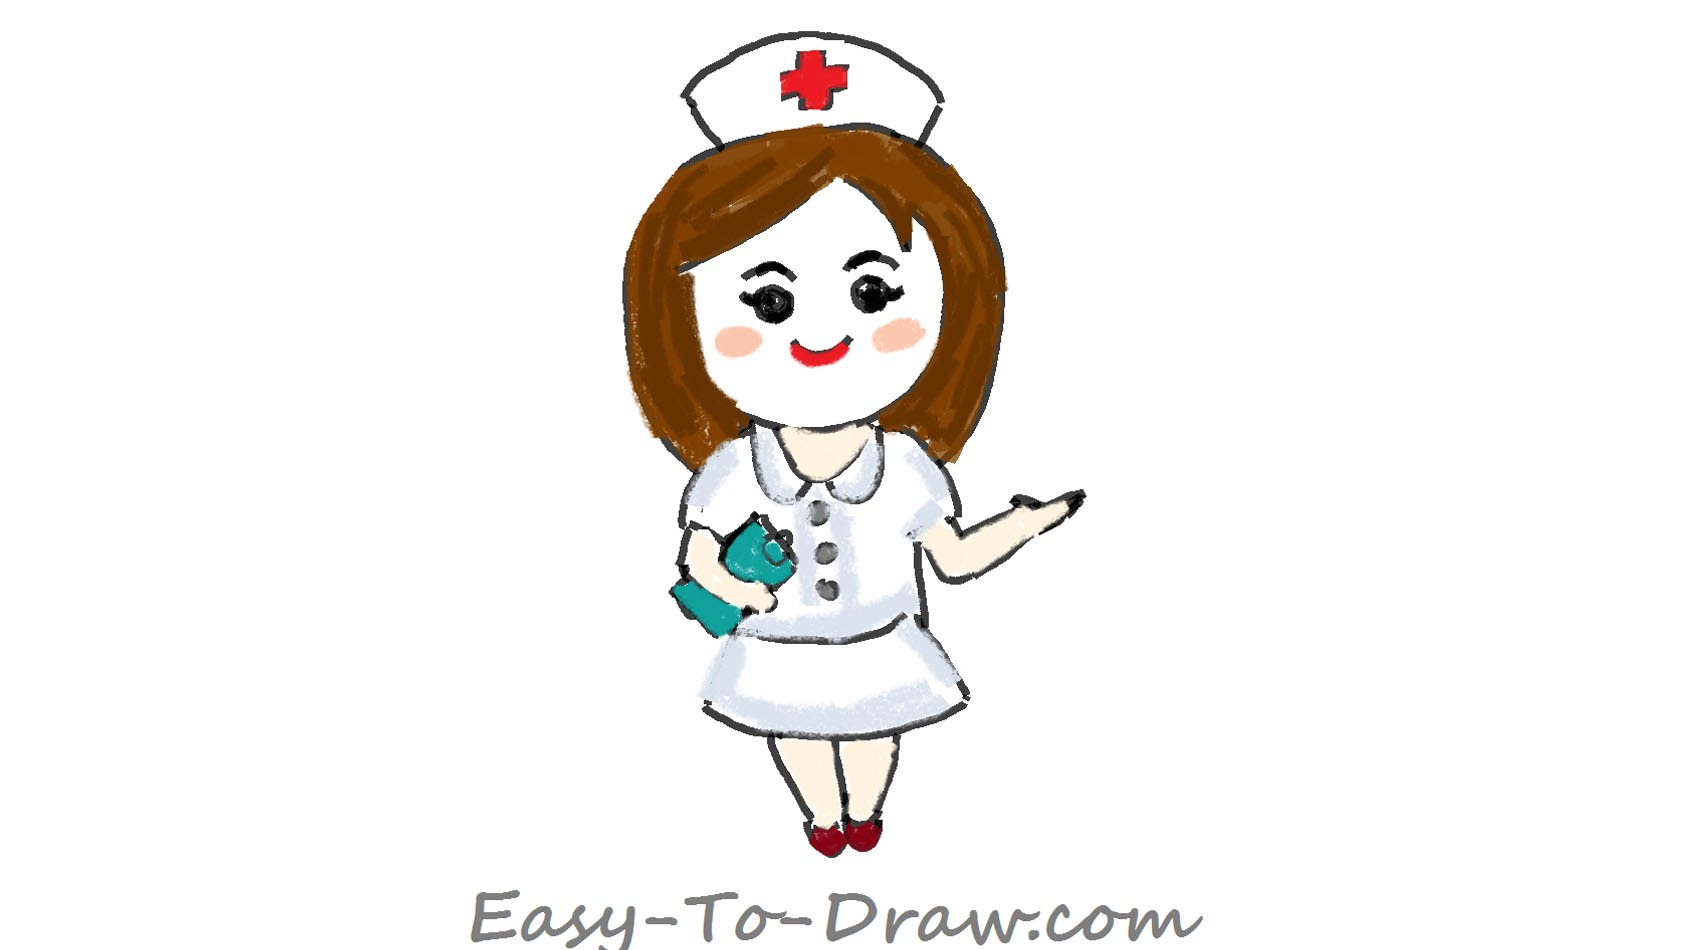 1687x950 How To Draw A Cartoon Registered Nurse With A Notebook In Hand